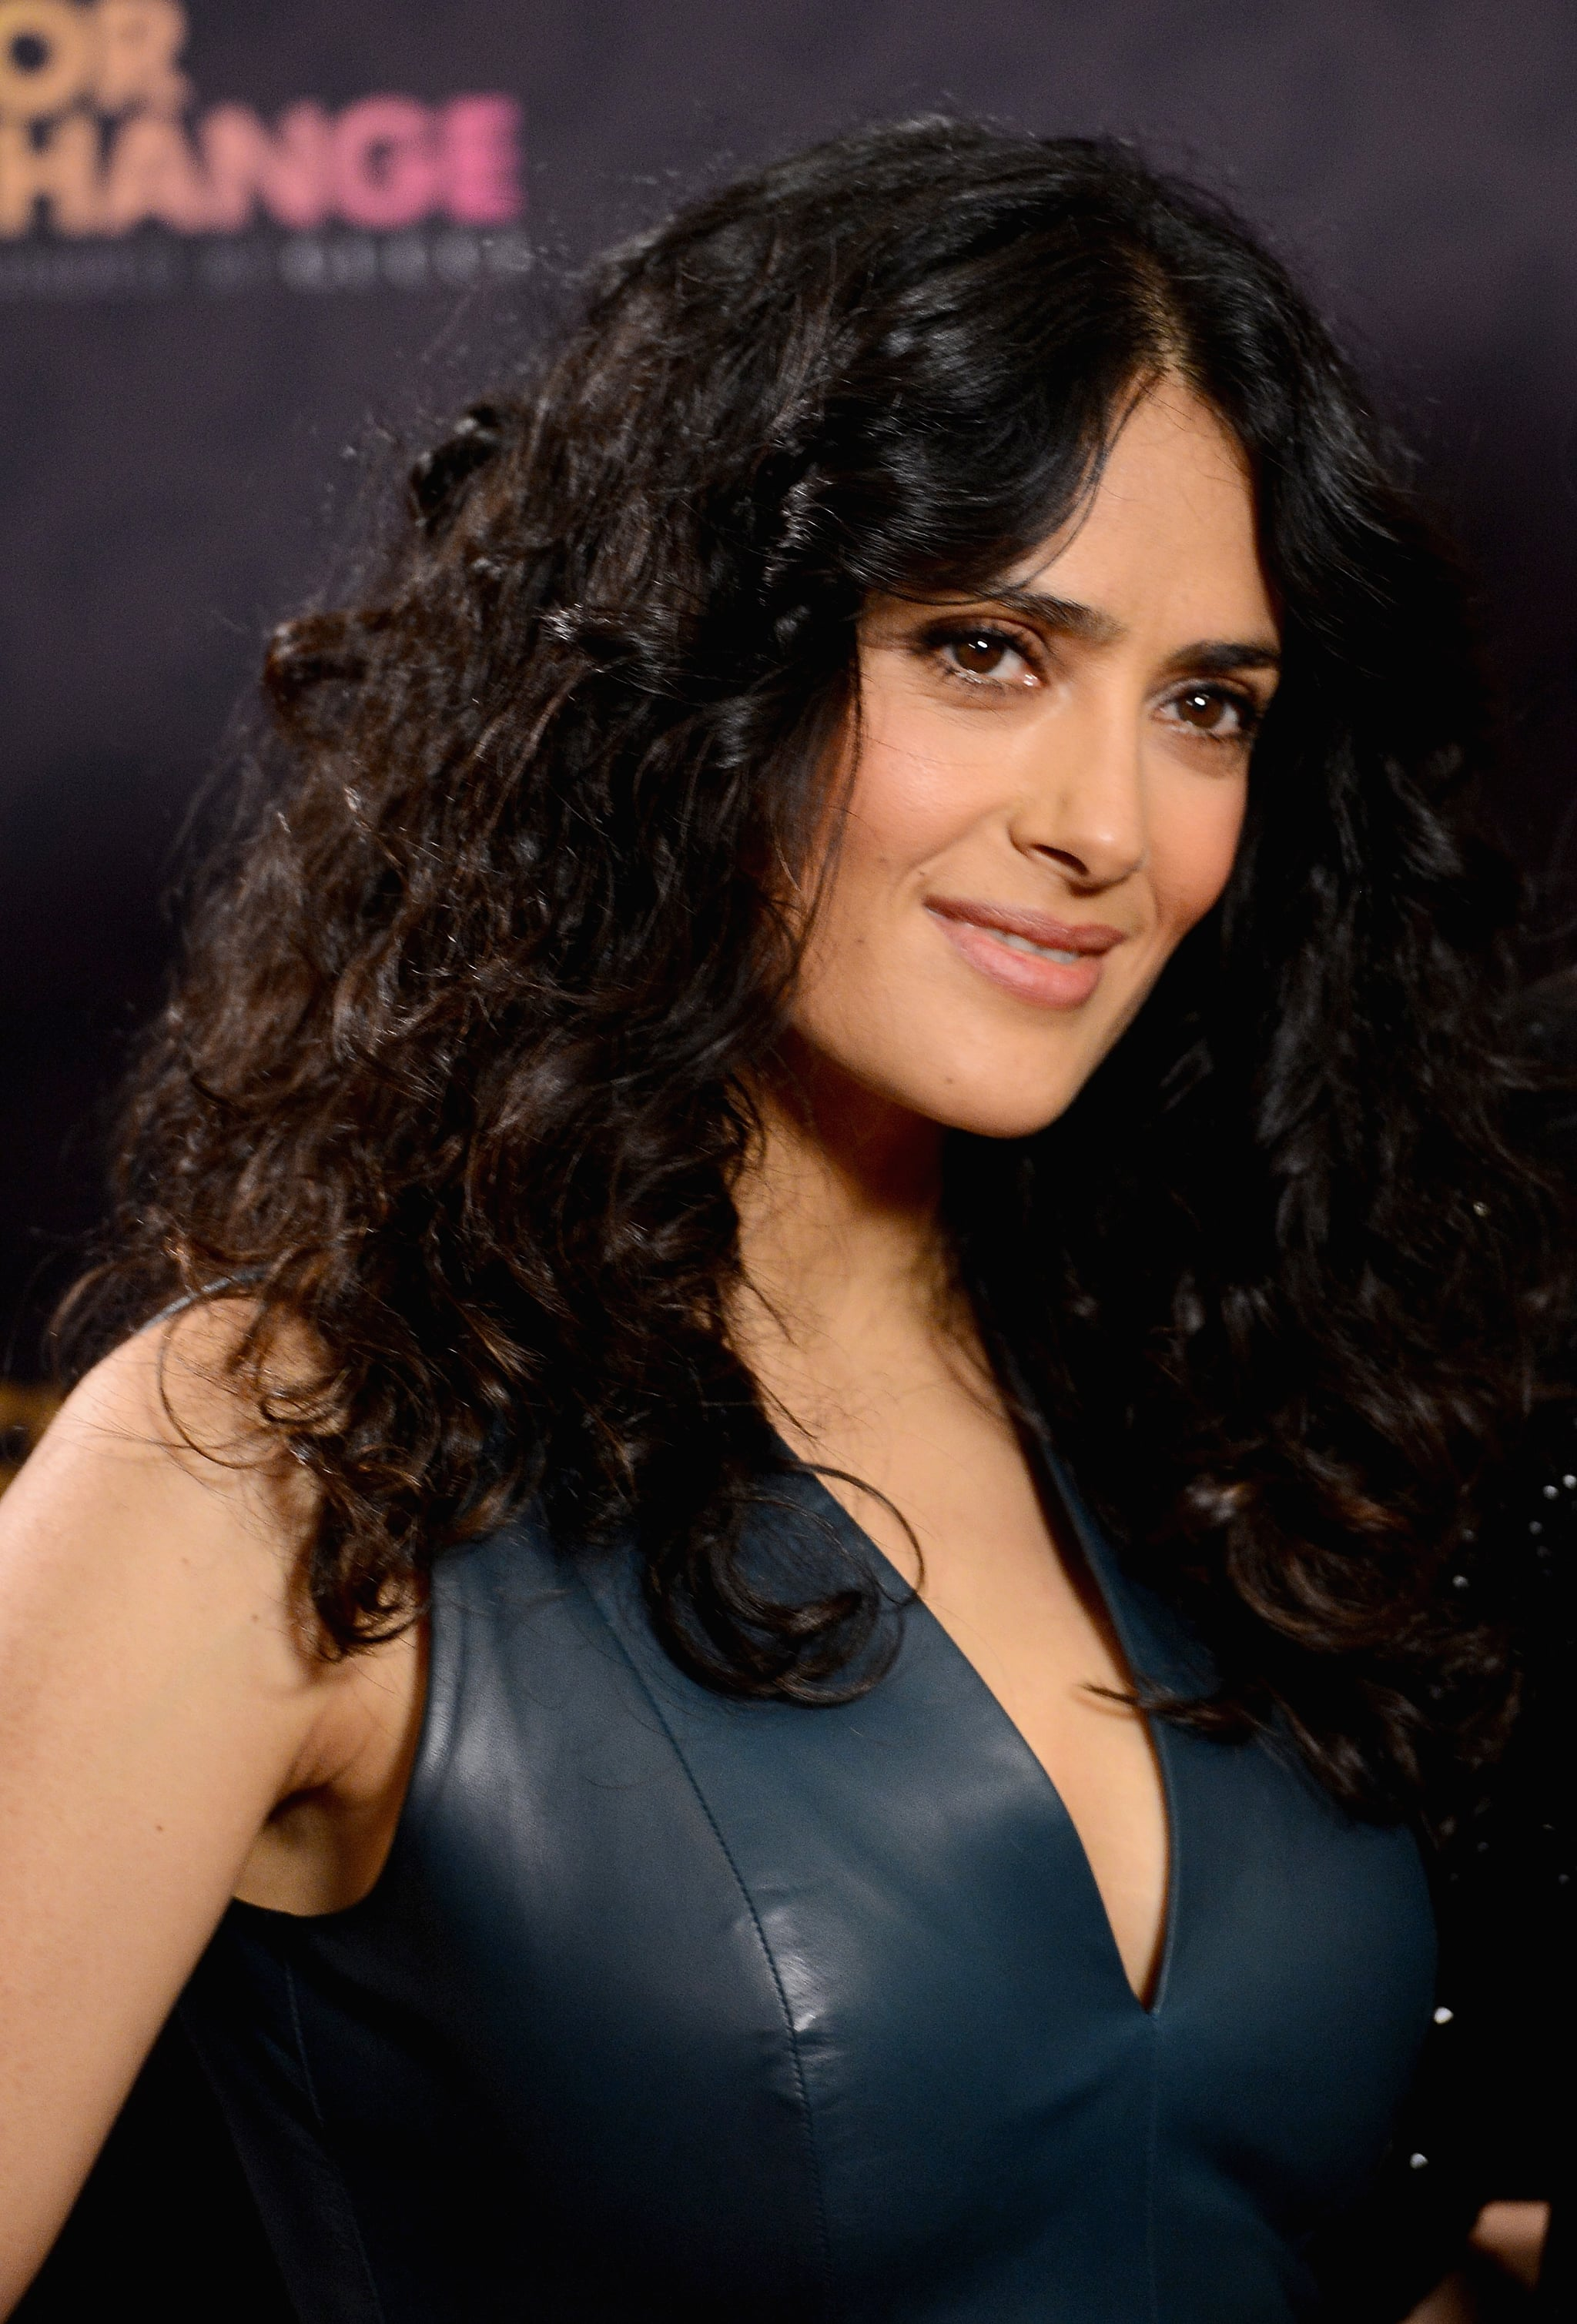 With a head full of curls, Salma Hayek was stunning at the Chime For Change concert with makeup in a natural palette.